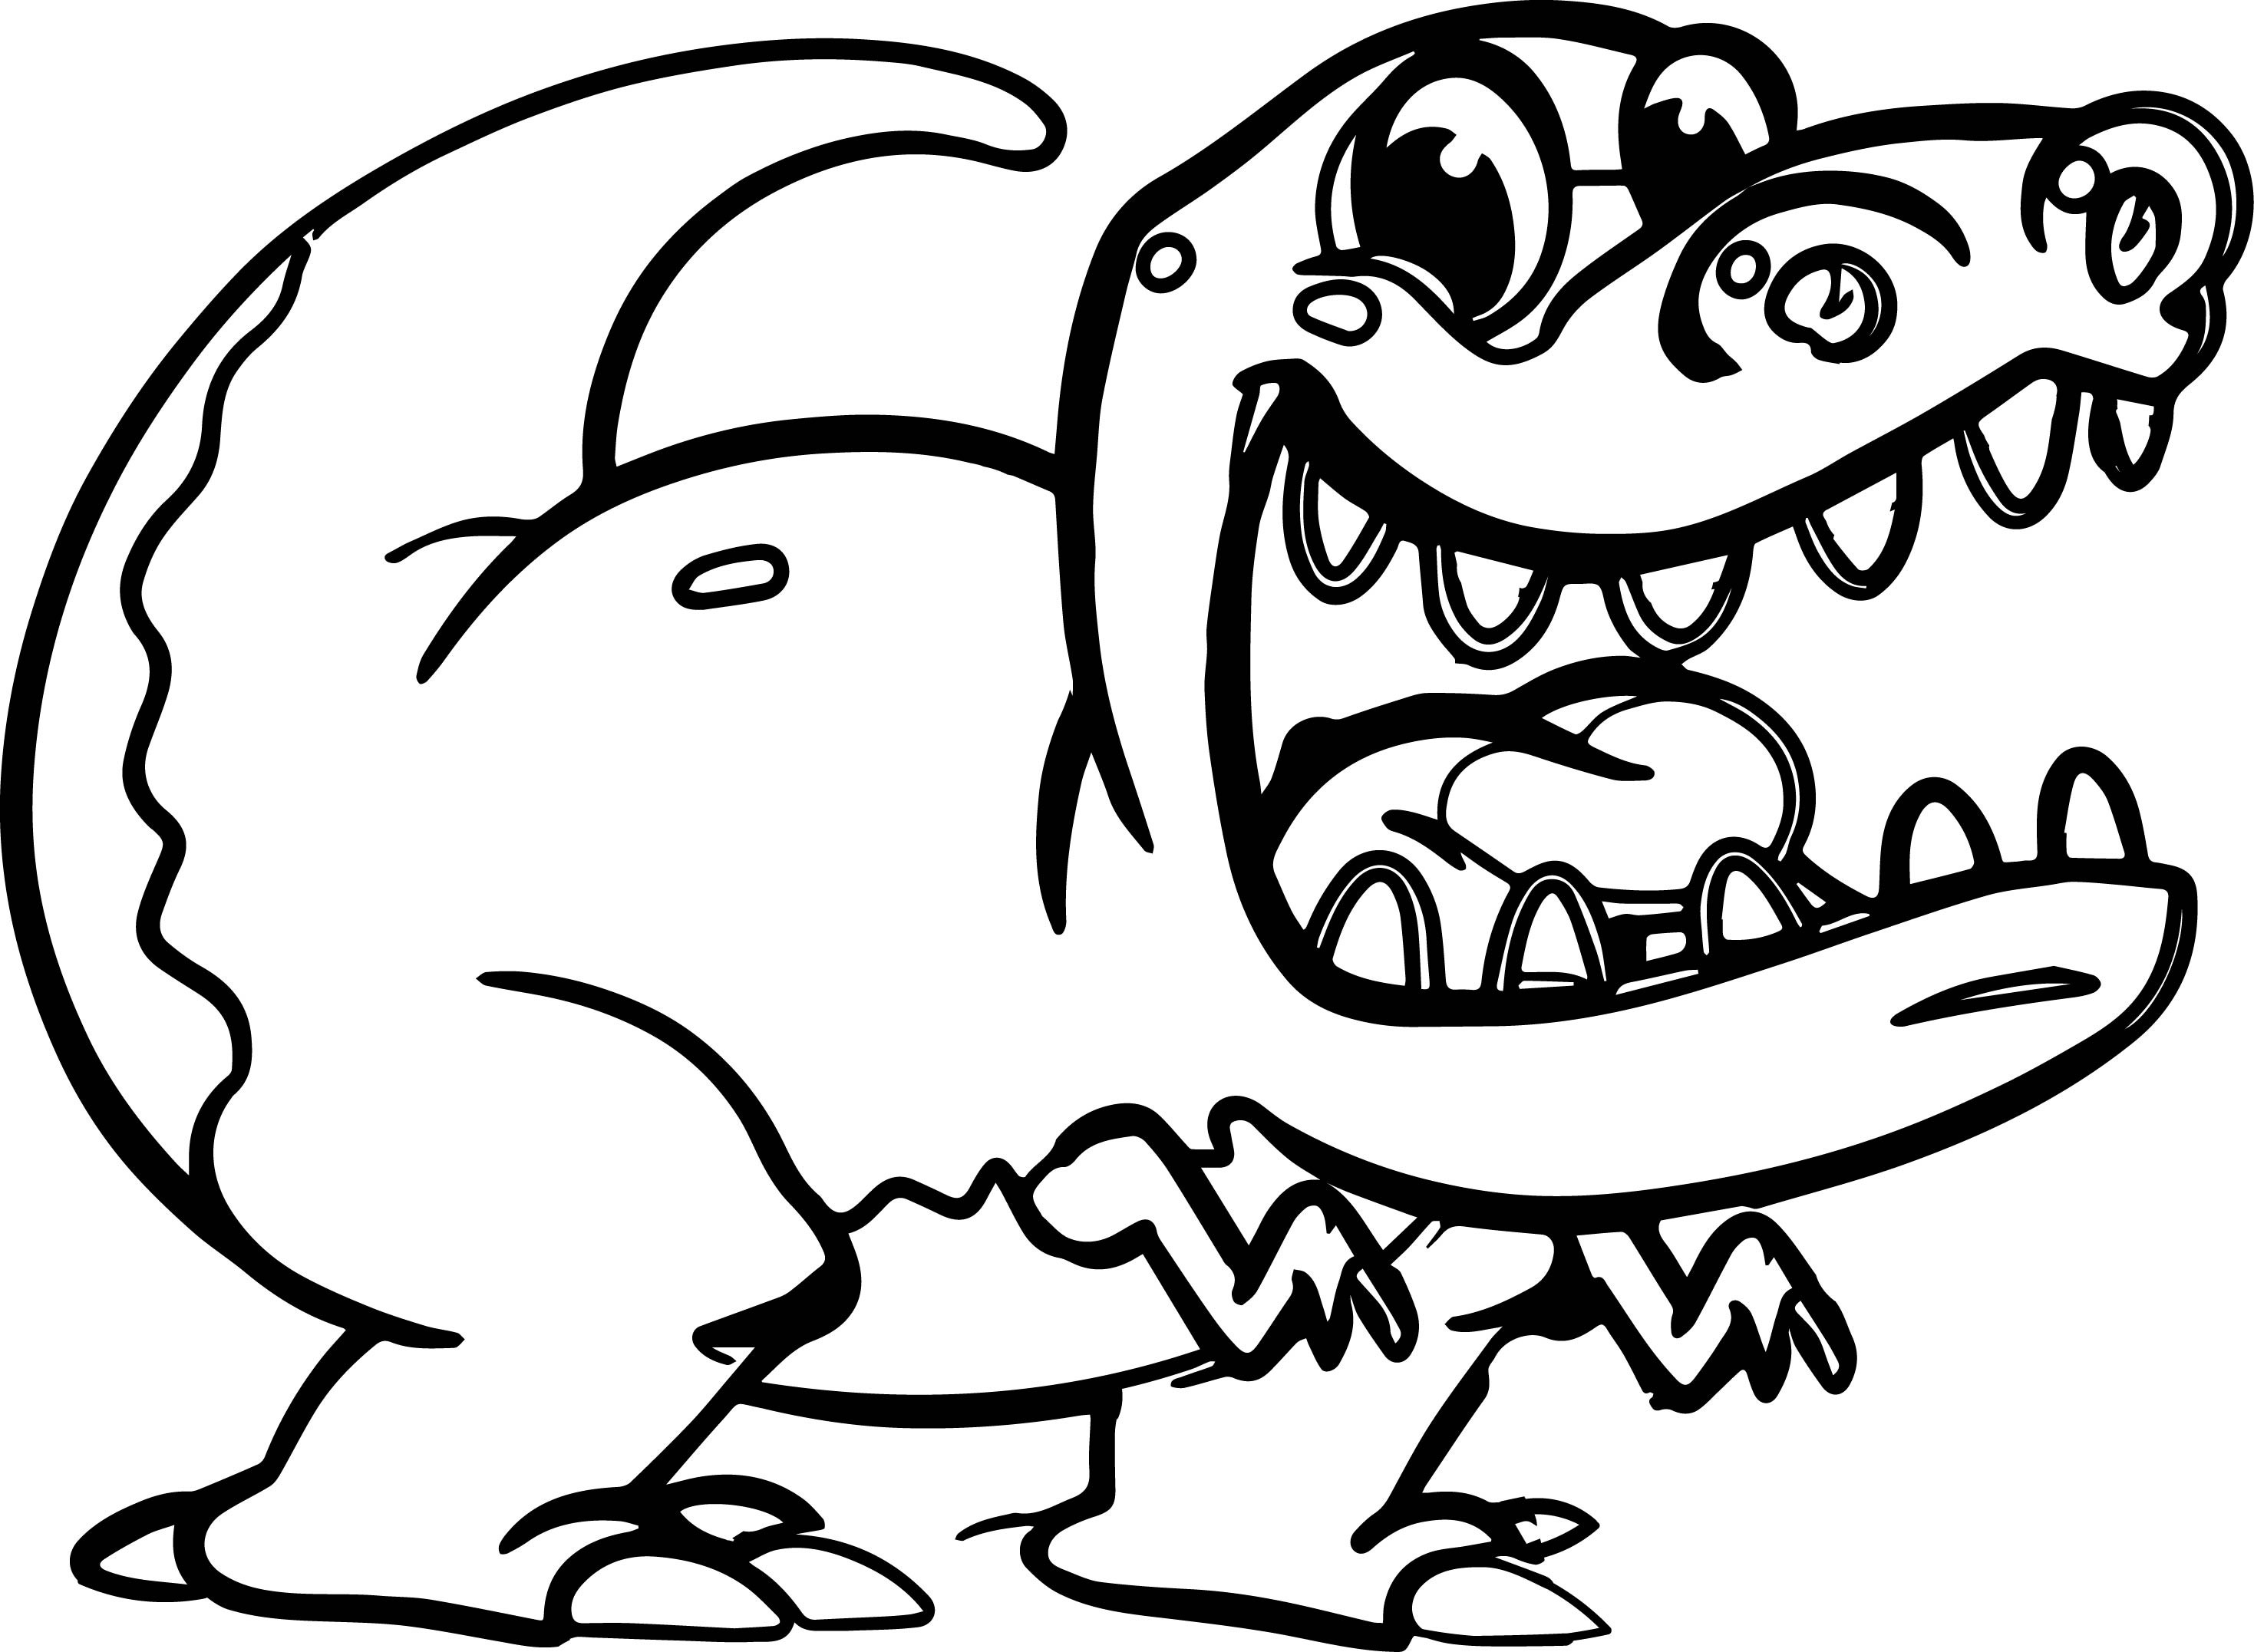 t rex coloring pictures print download dinosaur t rex coloring pages for kids rex coloring pictures t